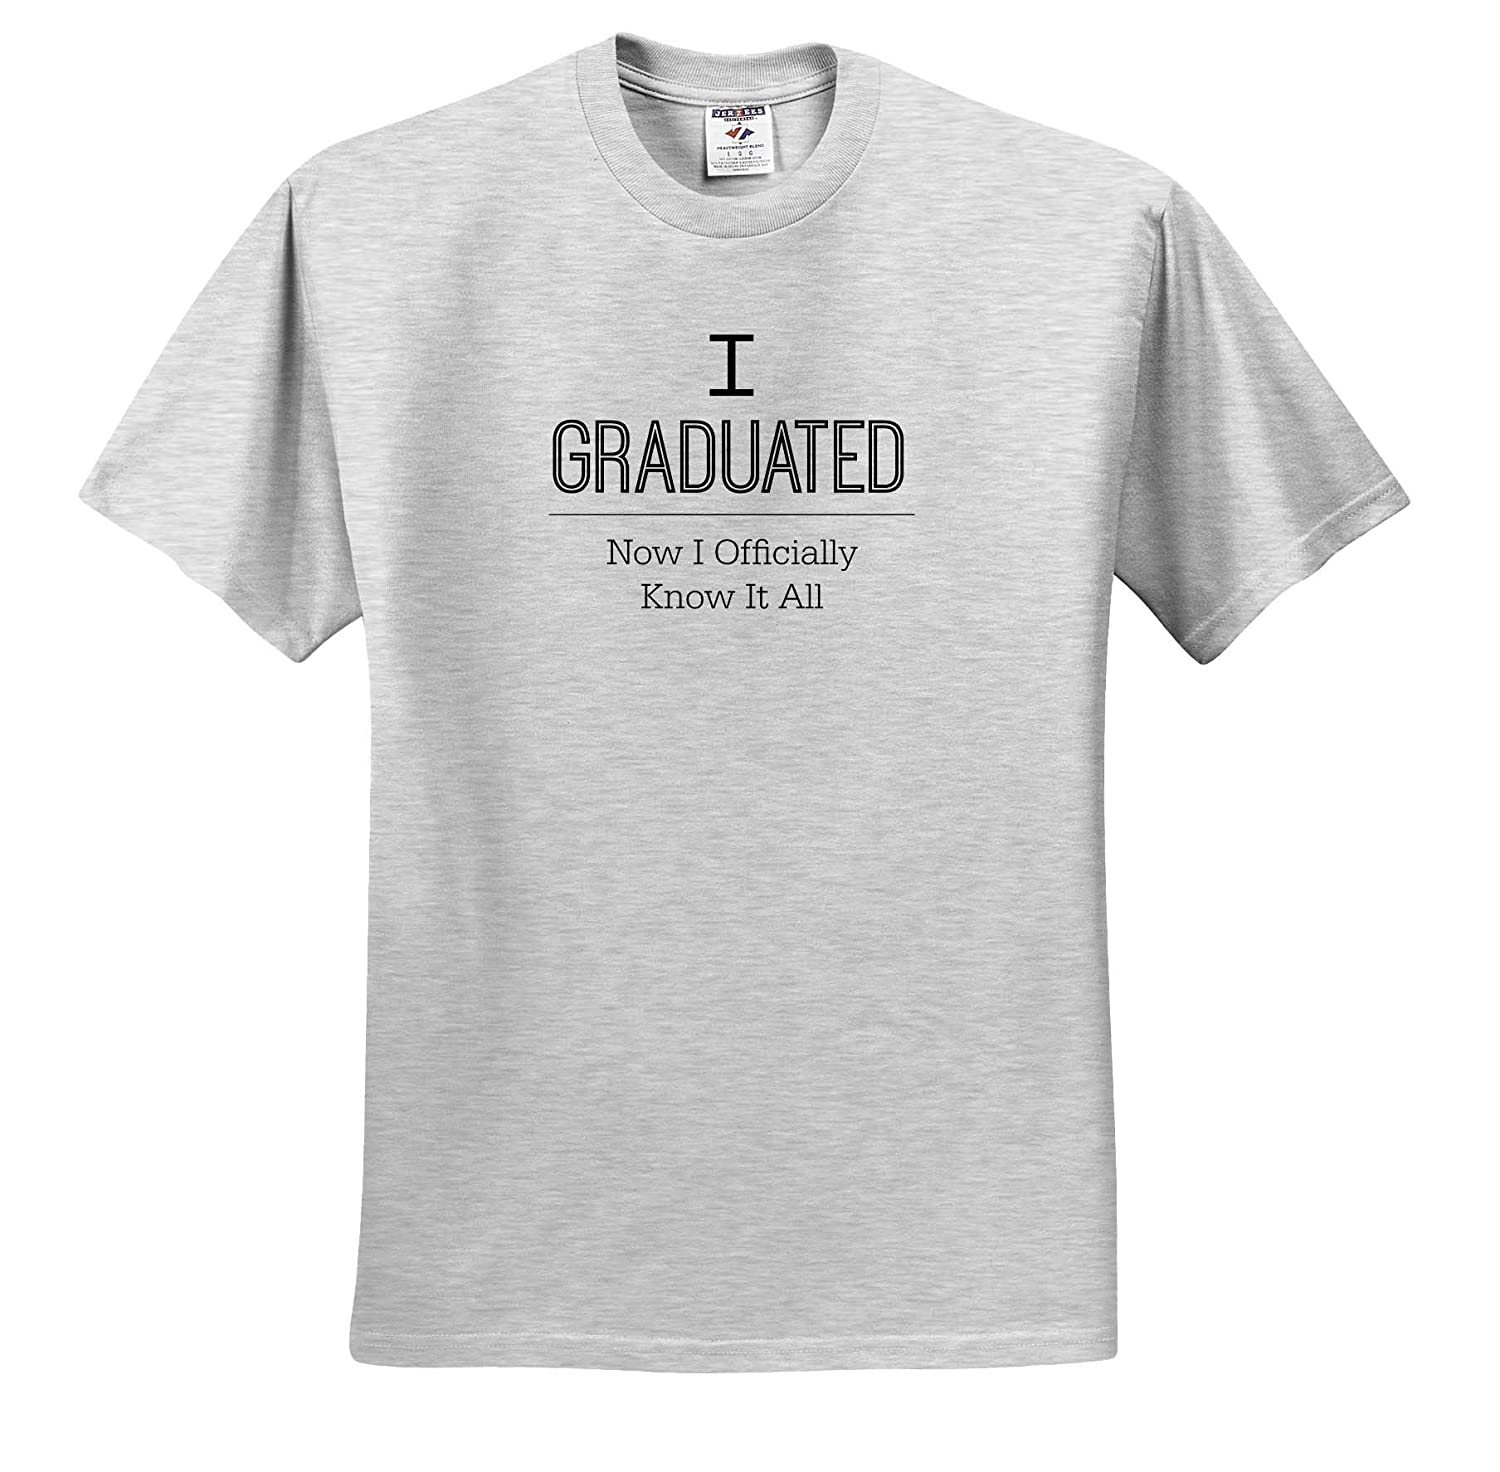 3dRose Carrie Merchant Image Adult T-Shirt XL Image of I Graduated I Officially Know It All ts/_309563